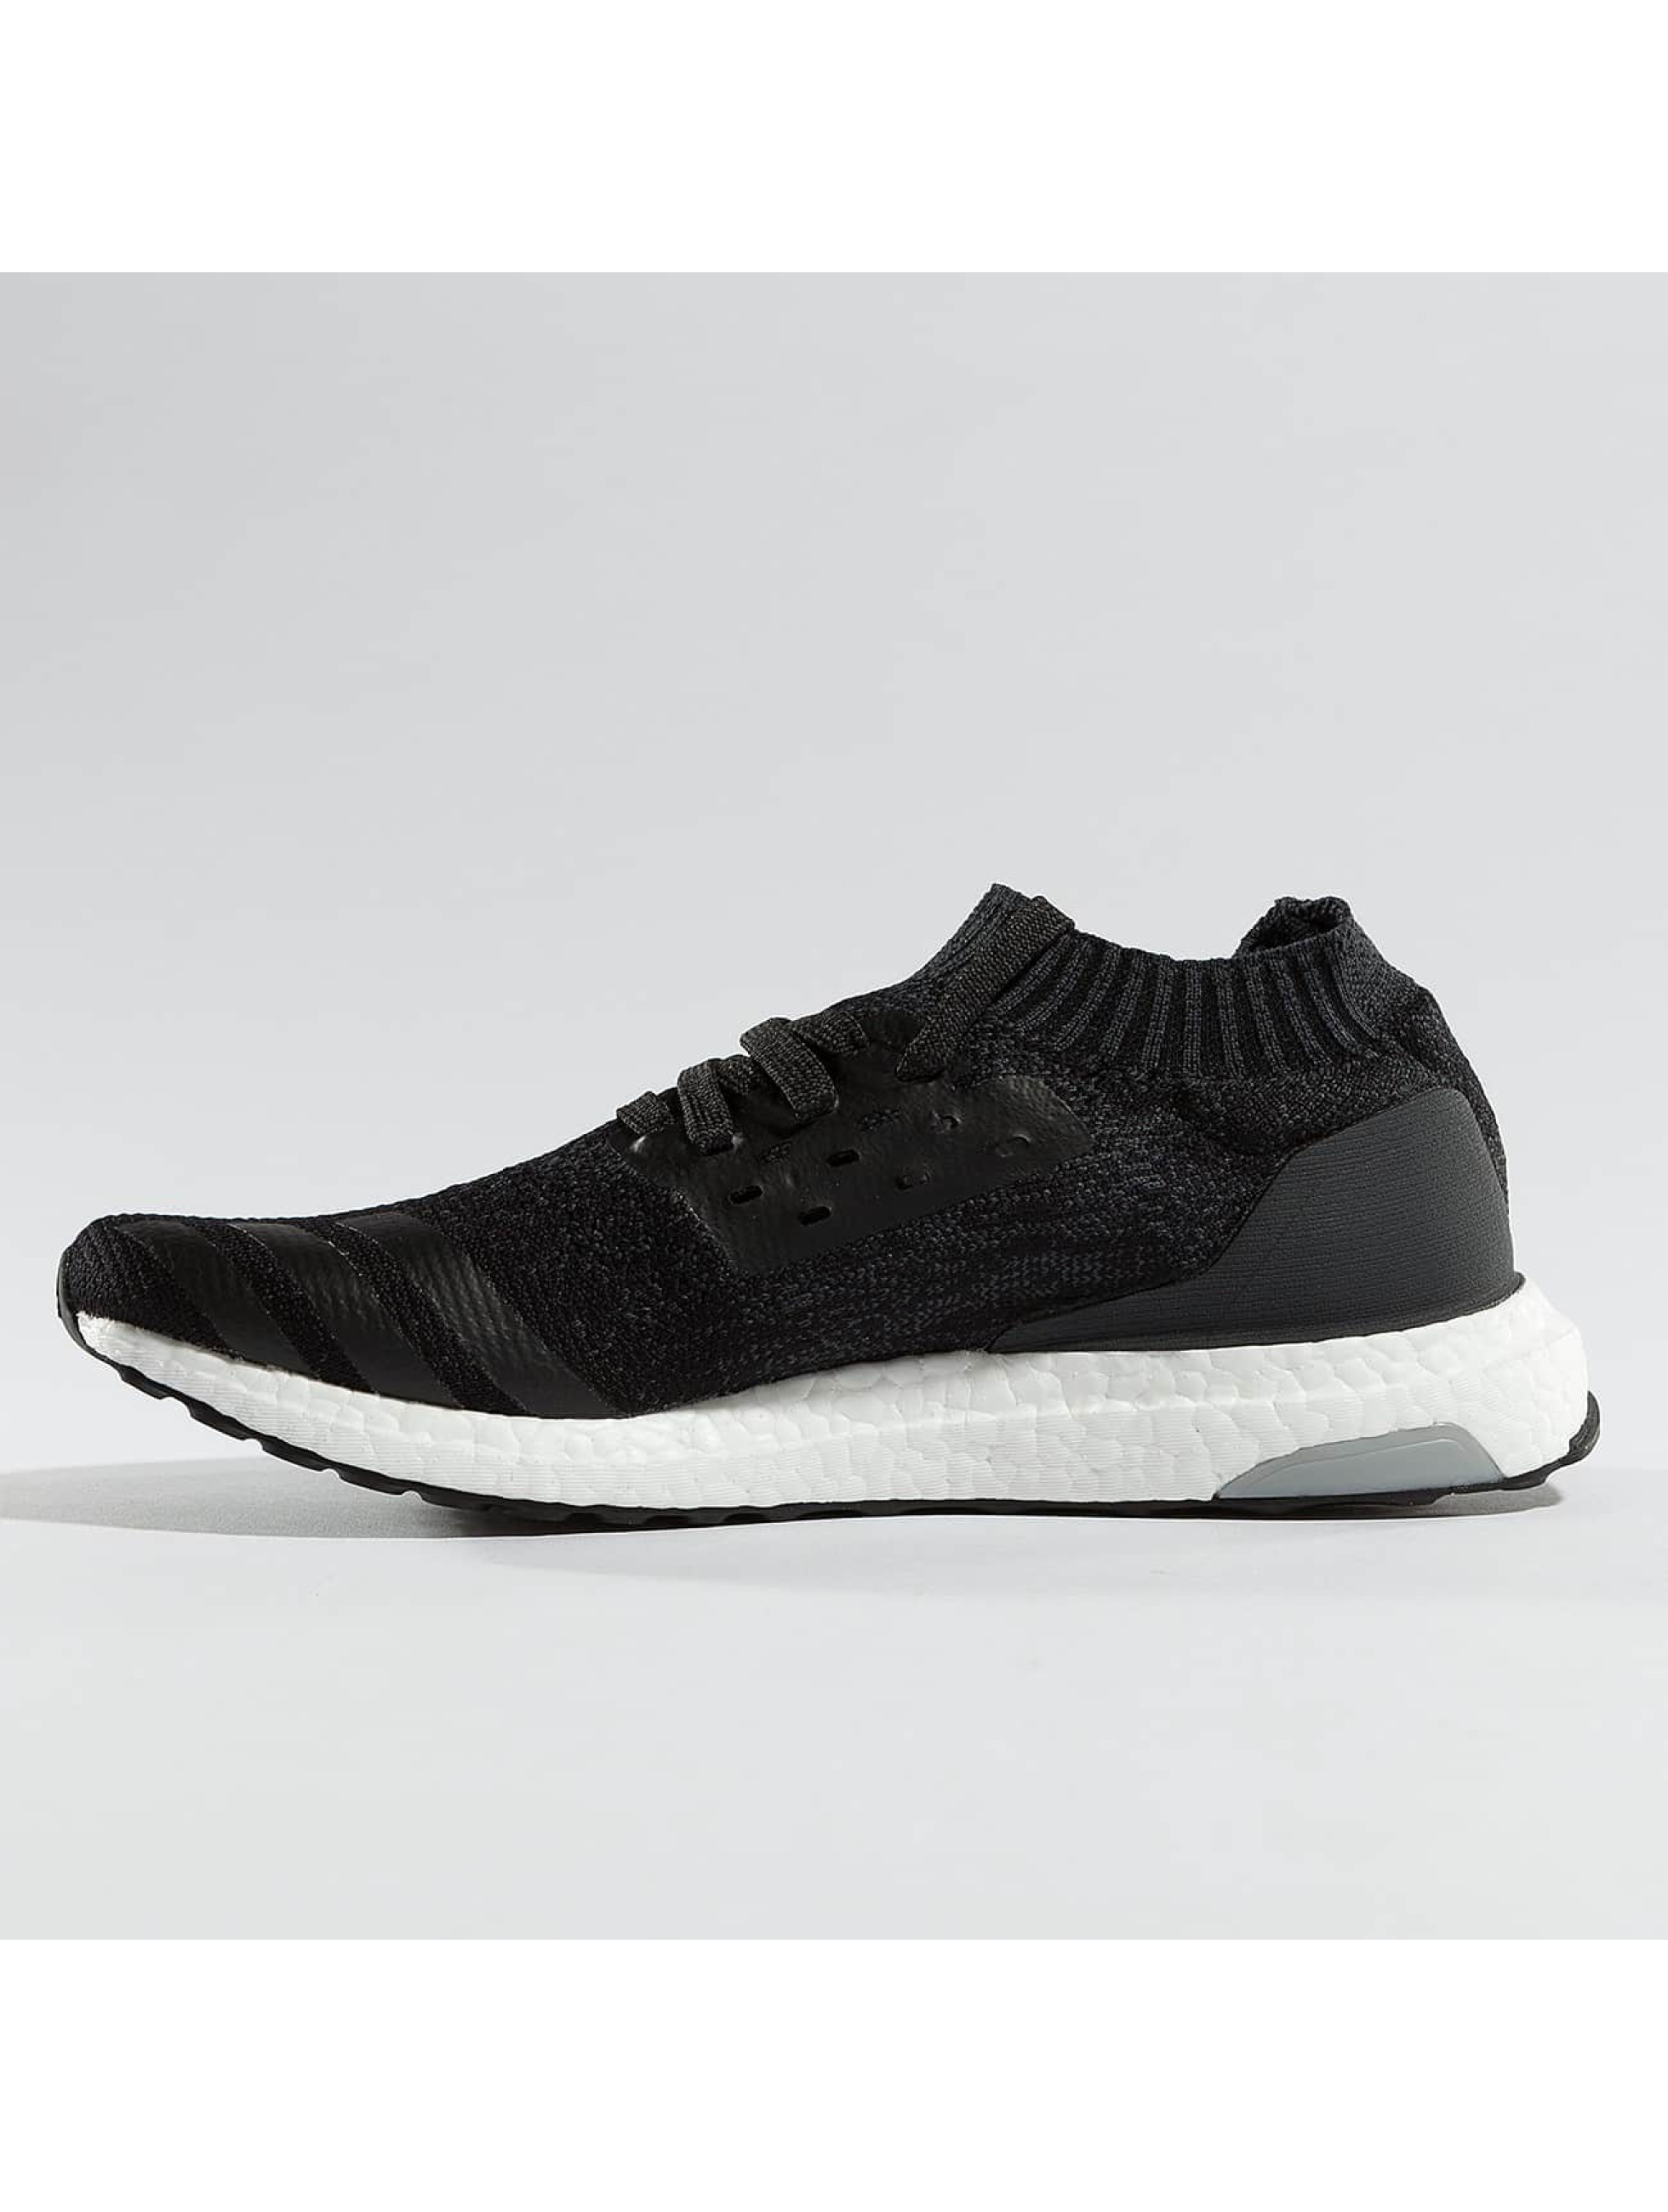 adidas performance herren schuhe sneaker ultra boost. Black Bedroom Furniture Sets. Home Design Ideas